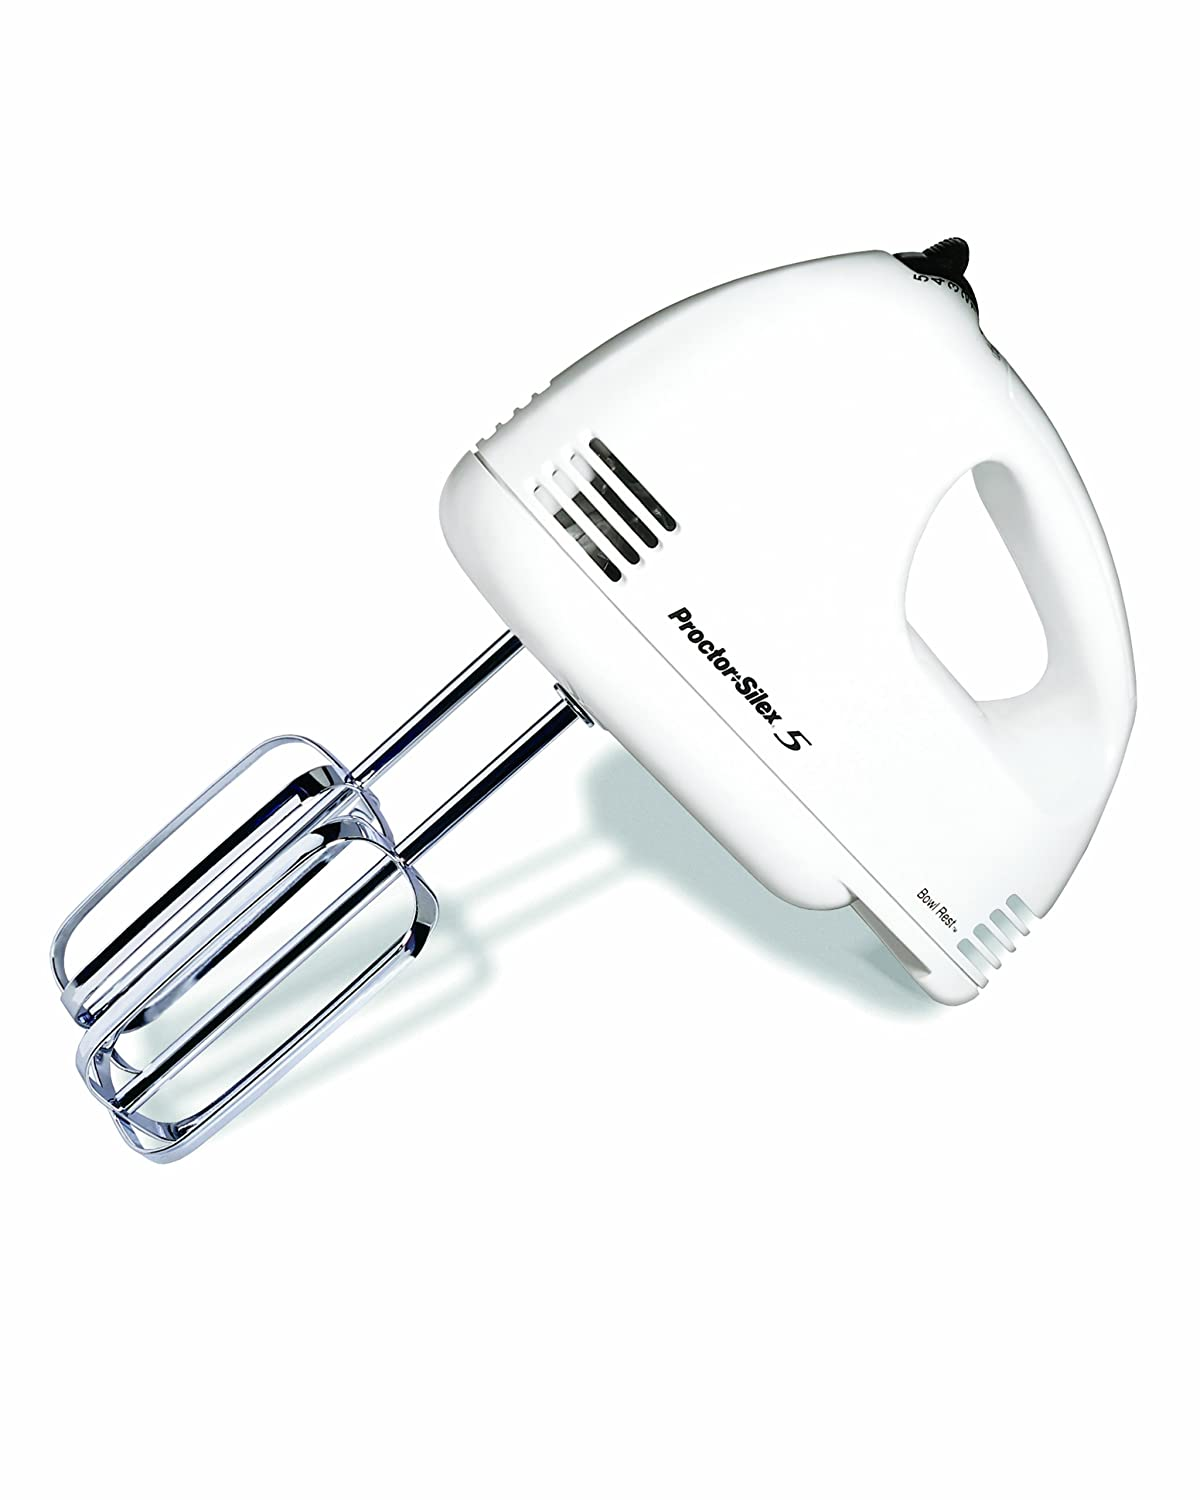 Proctor Silex 62515RY 5-Speed Easy Mix Hand Mixer, White